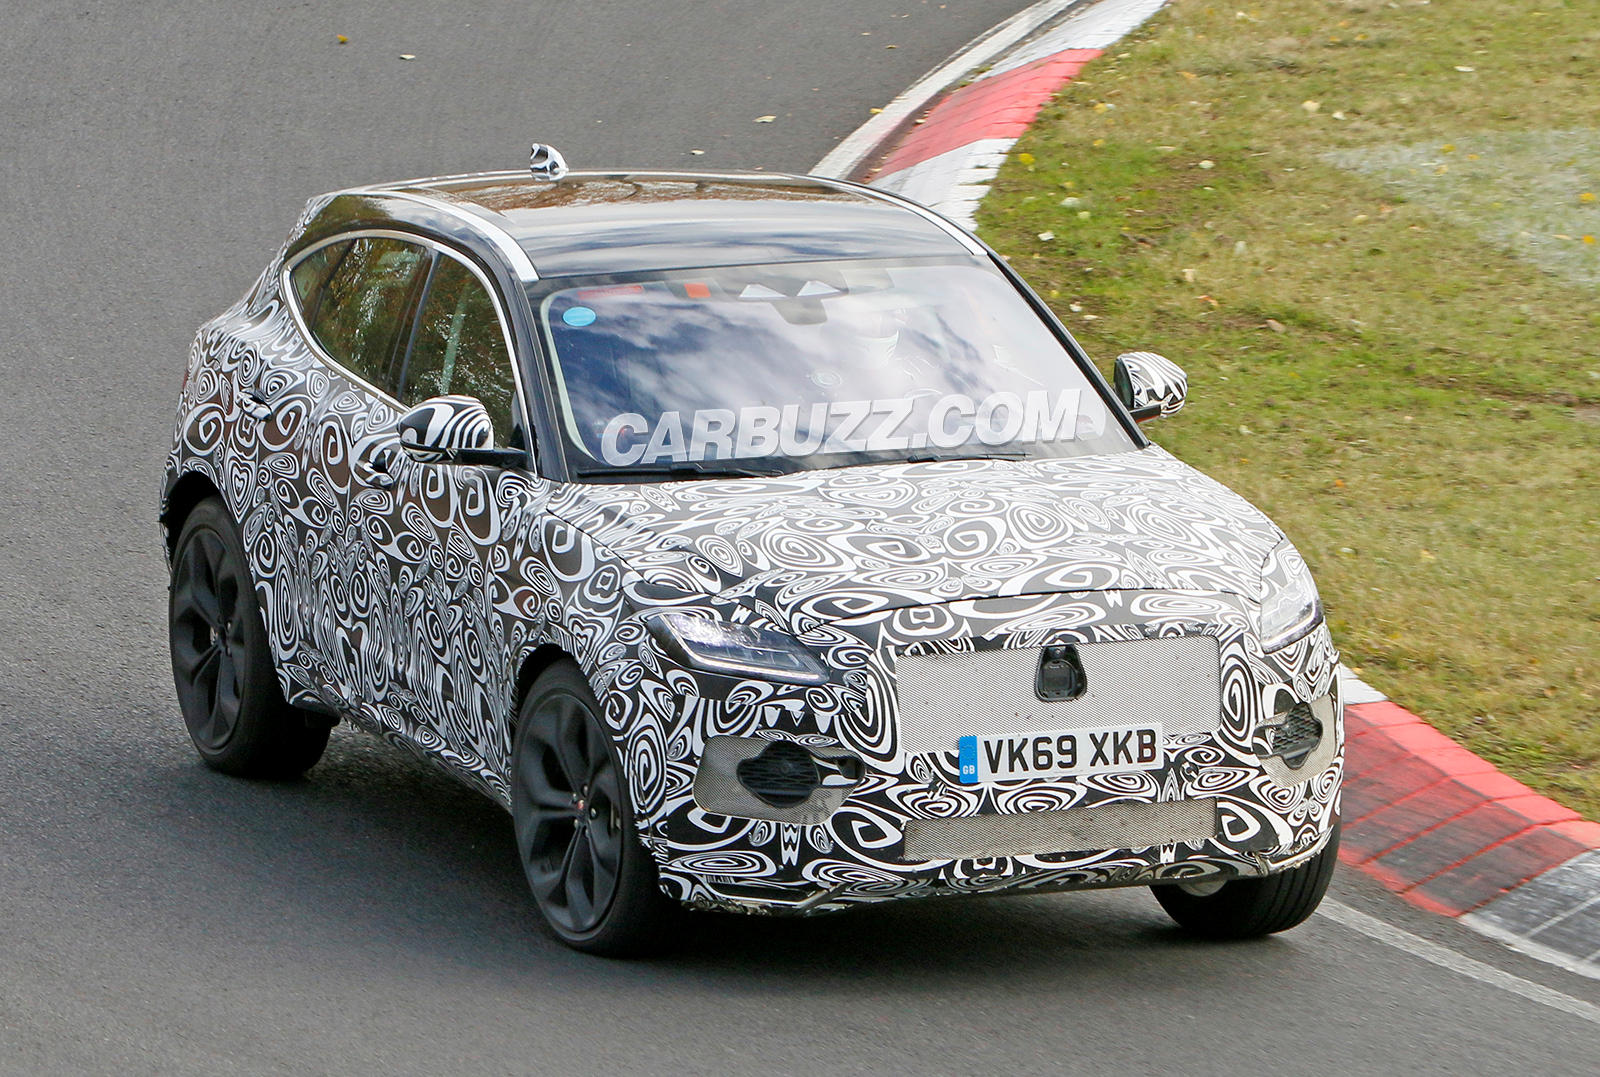 Jaguar has been very prolific with mid-life refreshes of its range lately, pushing out new XE. XF and F-Pace models within a mere month and a half. The compact SUV E-Pace was the only one left out, but if these spy shots from the North Loop are any indication, it won't be long until it debuts, too.